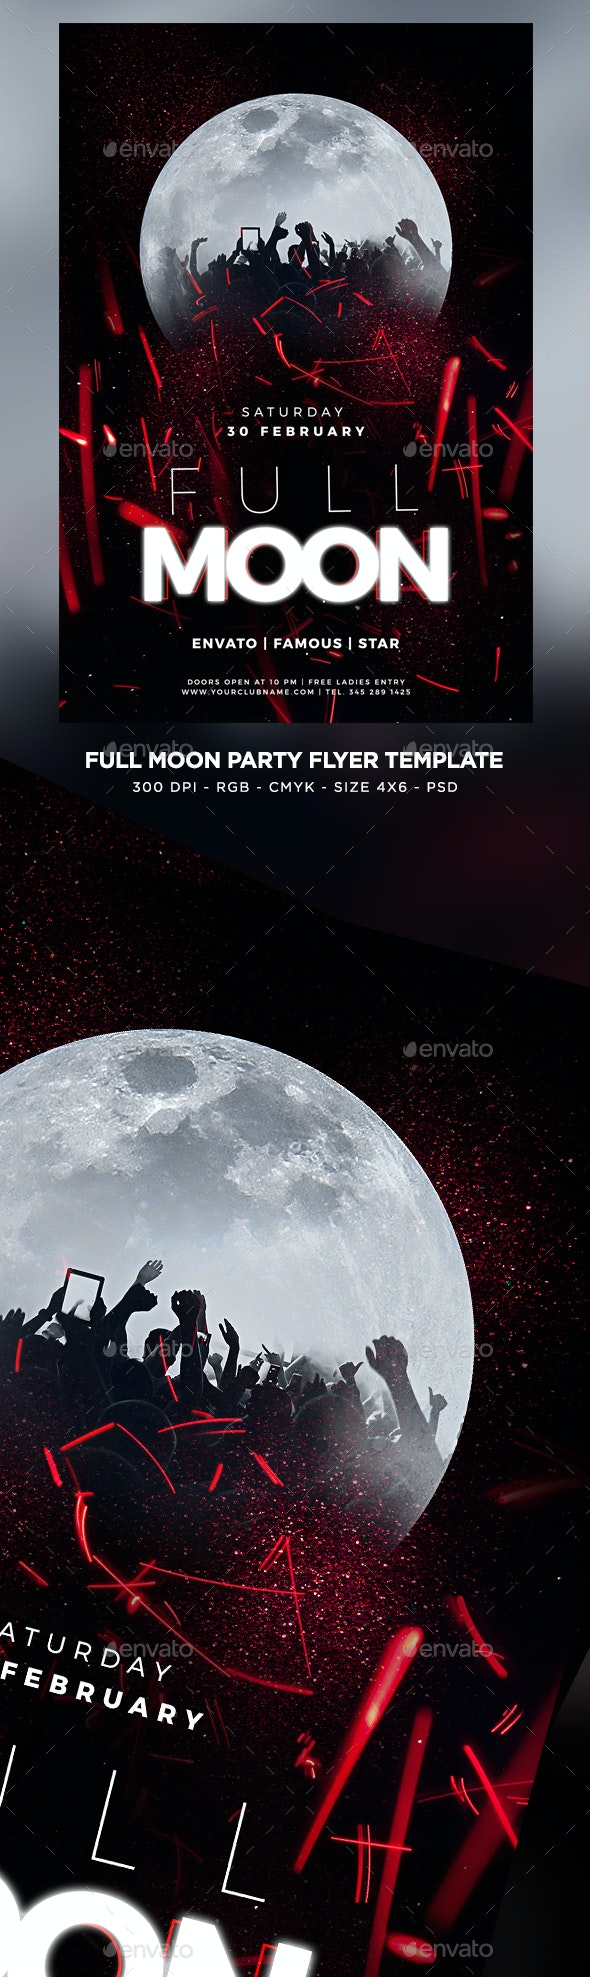 Full Moon Party Flyer - Clubs & Parties Events